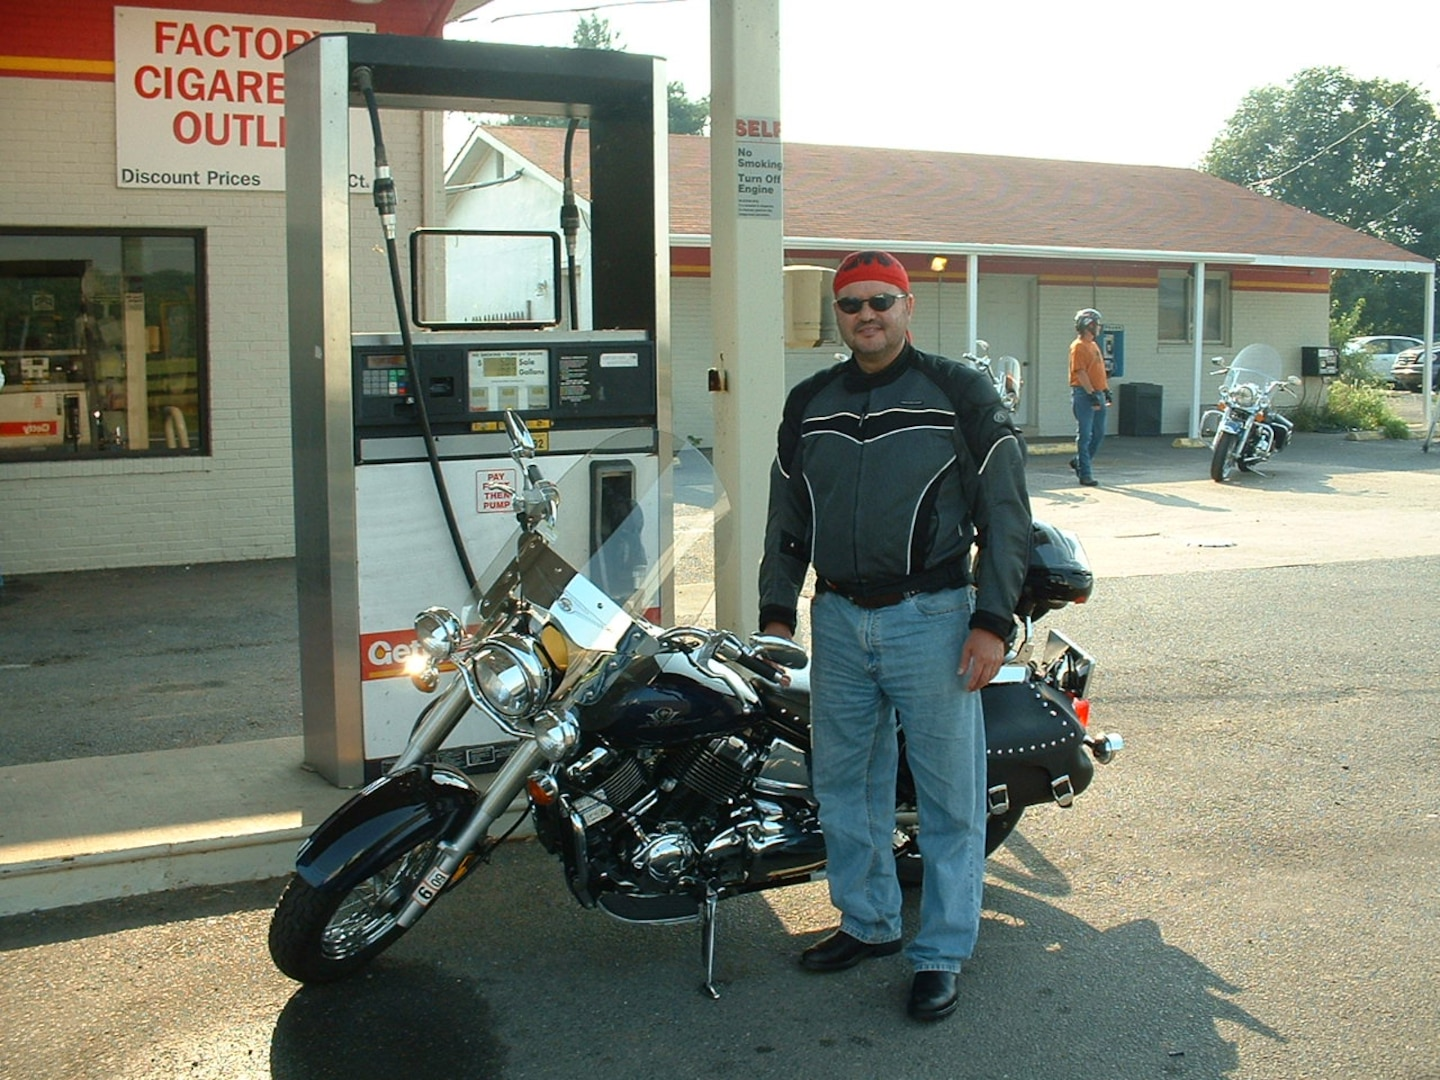 Man stands in front of a tank at a gas station with this motorcycle